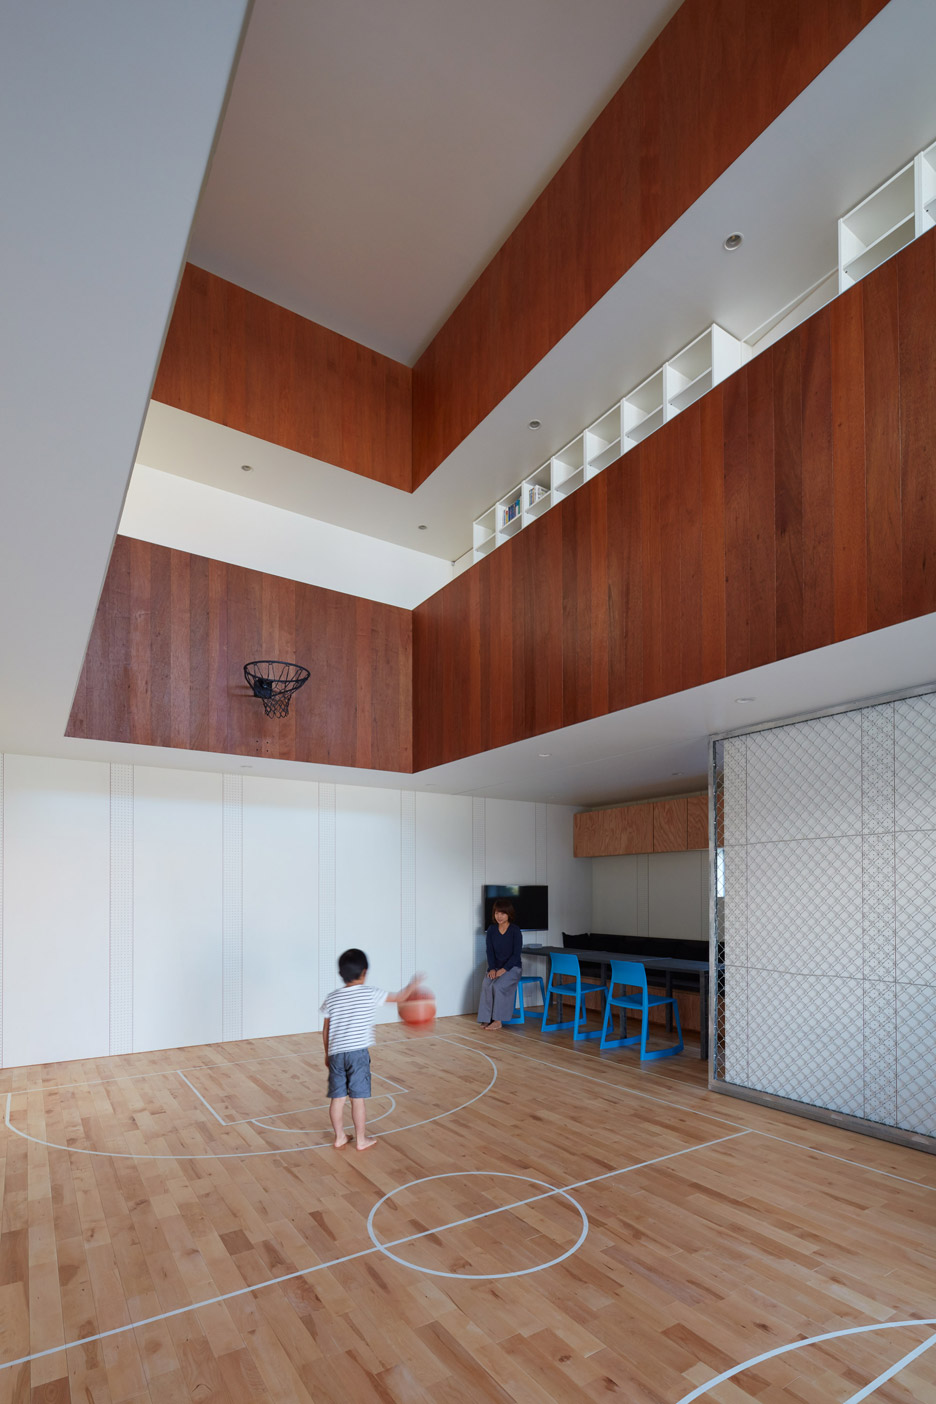 A House In Japan Has An Indoor Basketball Court - Your No.1 source ...